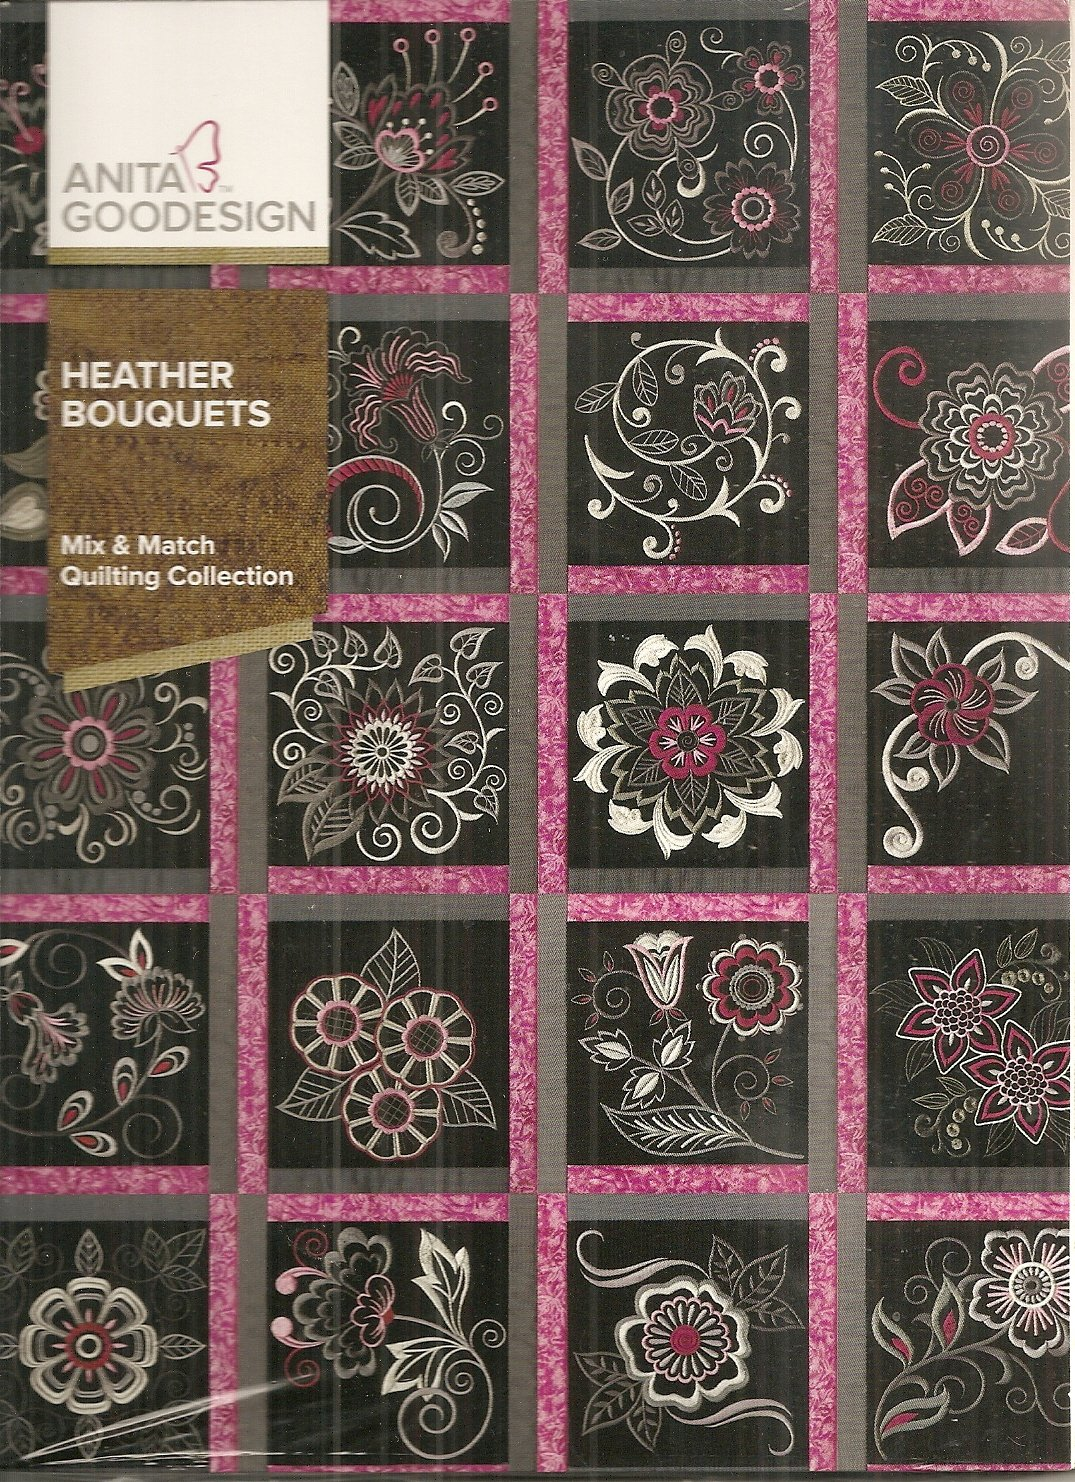 Anita Goodesign Mix Amp Match Quilting Heather Bouquets